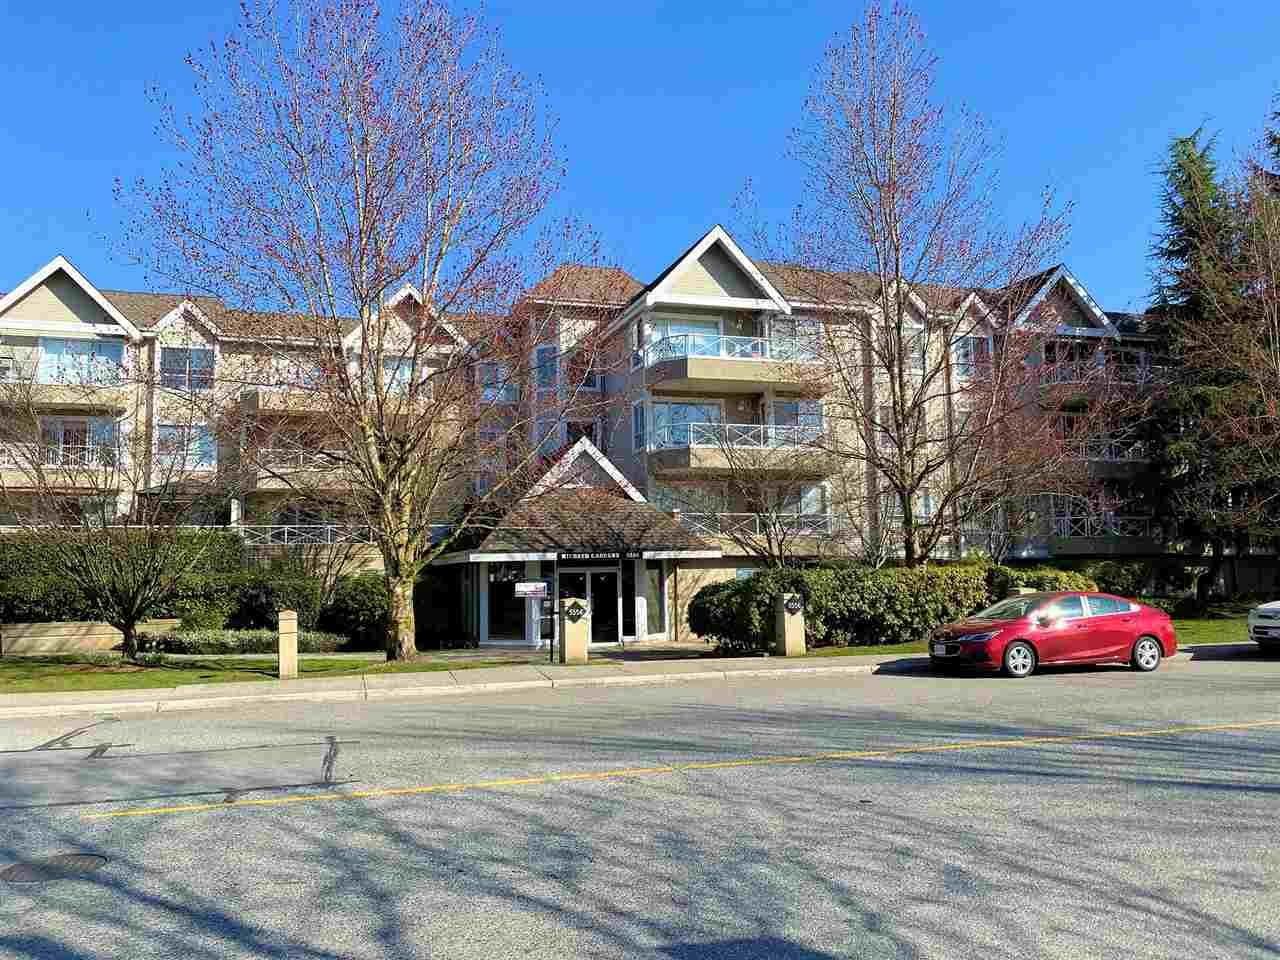 """Main Photo: 108 5556 201A Street in Langley: Langley City Condo for sale in """"Michaud Gardens"""" : MLS®# R2450874"""